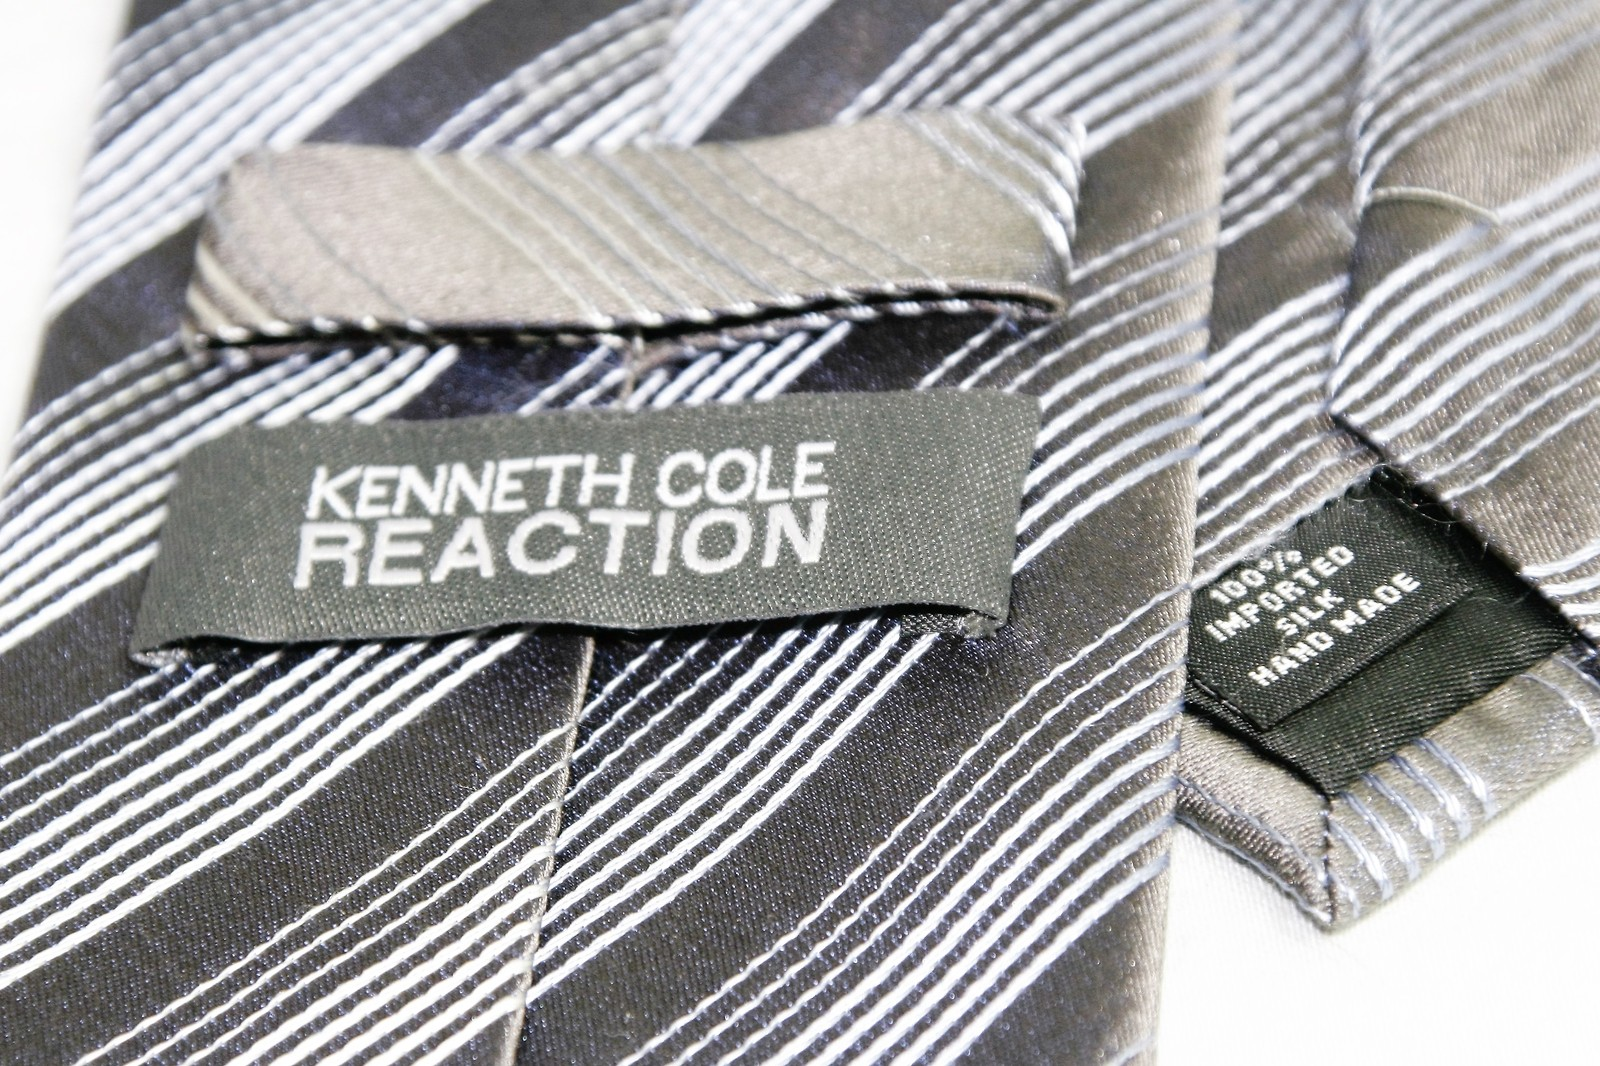 Kenneth Cole Reaction Silver Gray Striped Design 100% Silk Men's Necktie Tie image 3